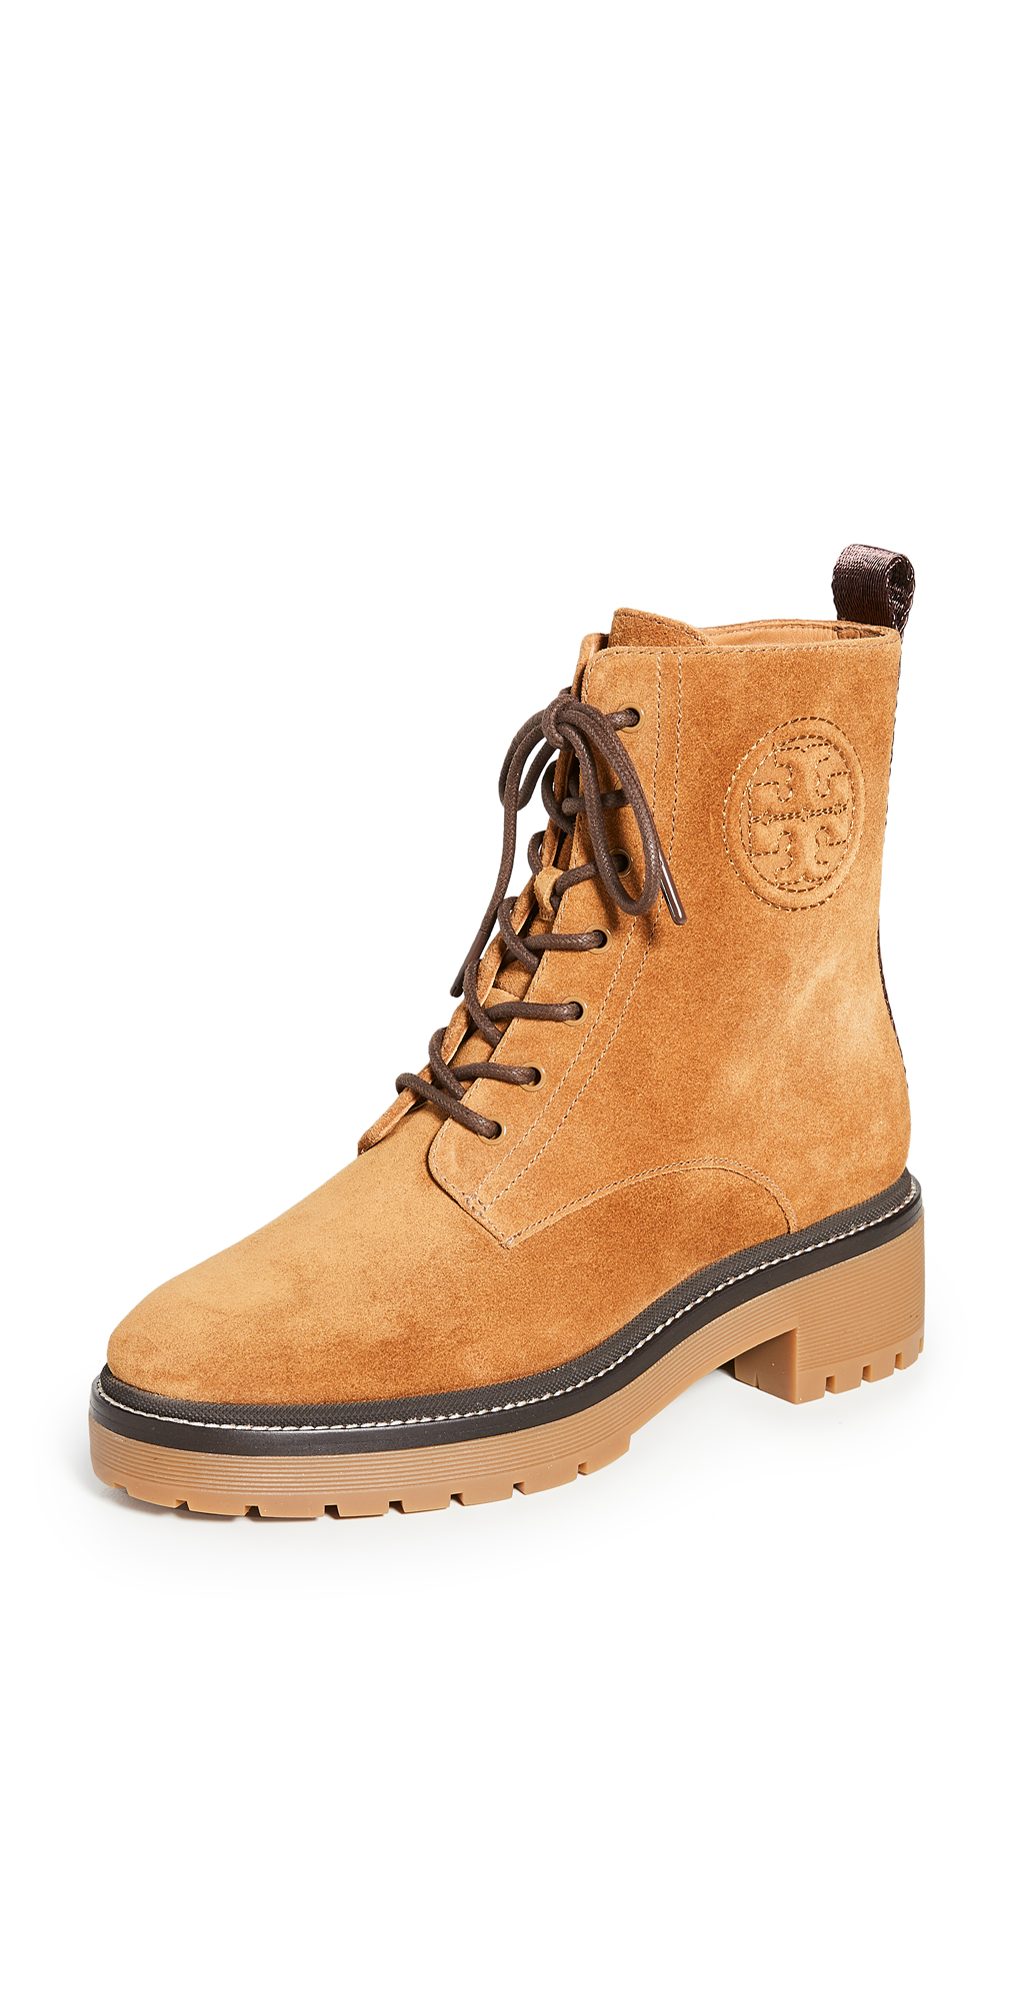 Tory Burch 50mm Miller Lug Sole Booties